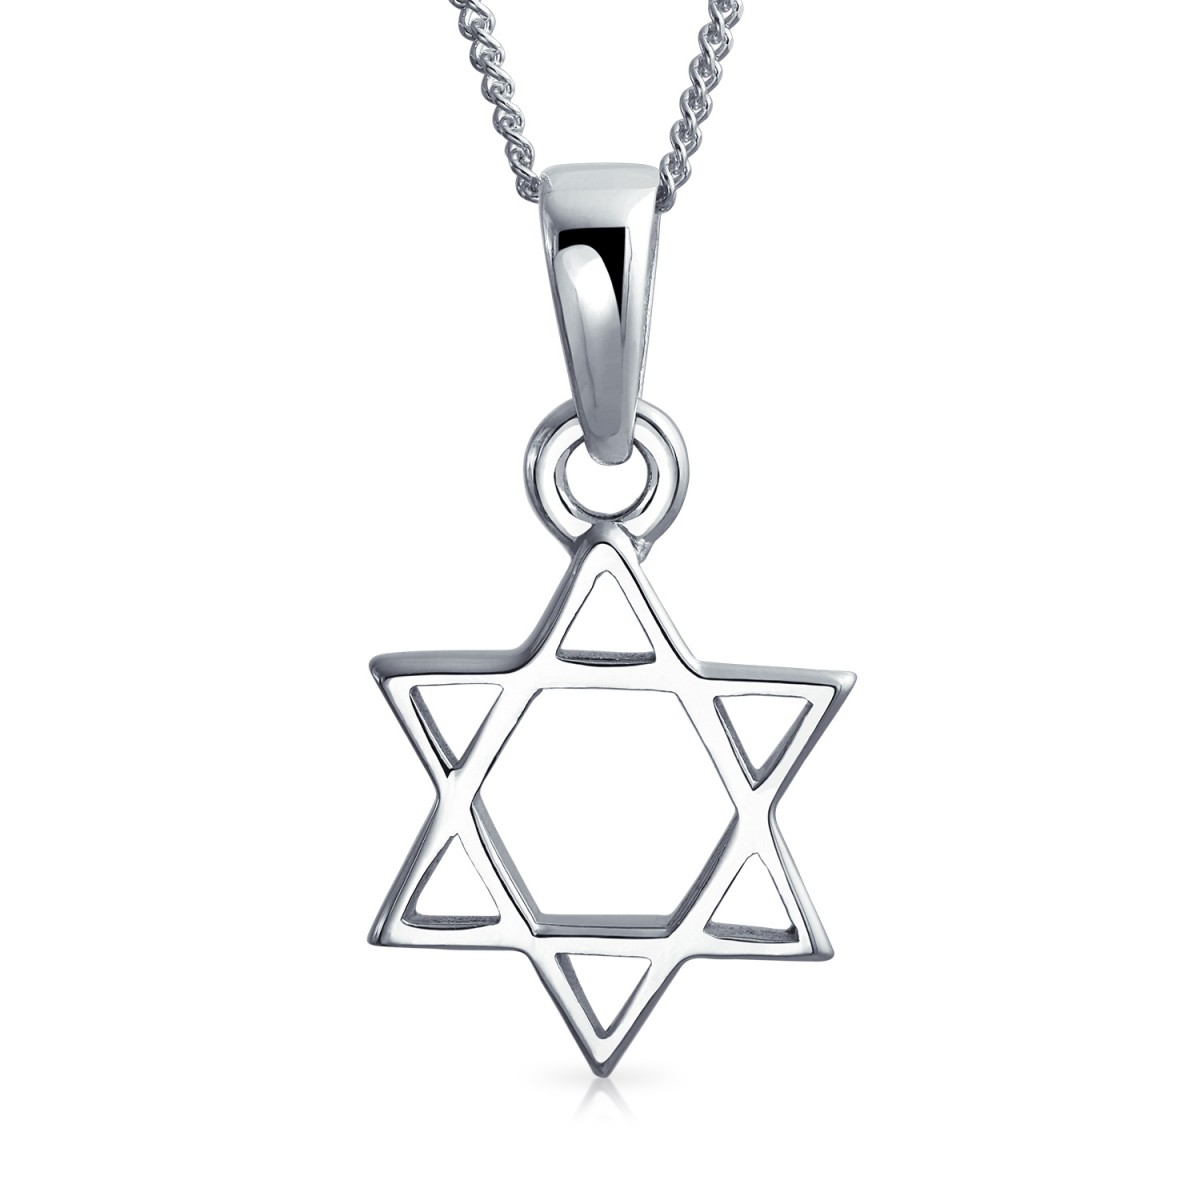 1200x1200 Open Star Of David Jewish Pendant Necklace Sterling Silver 18in